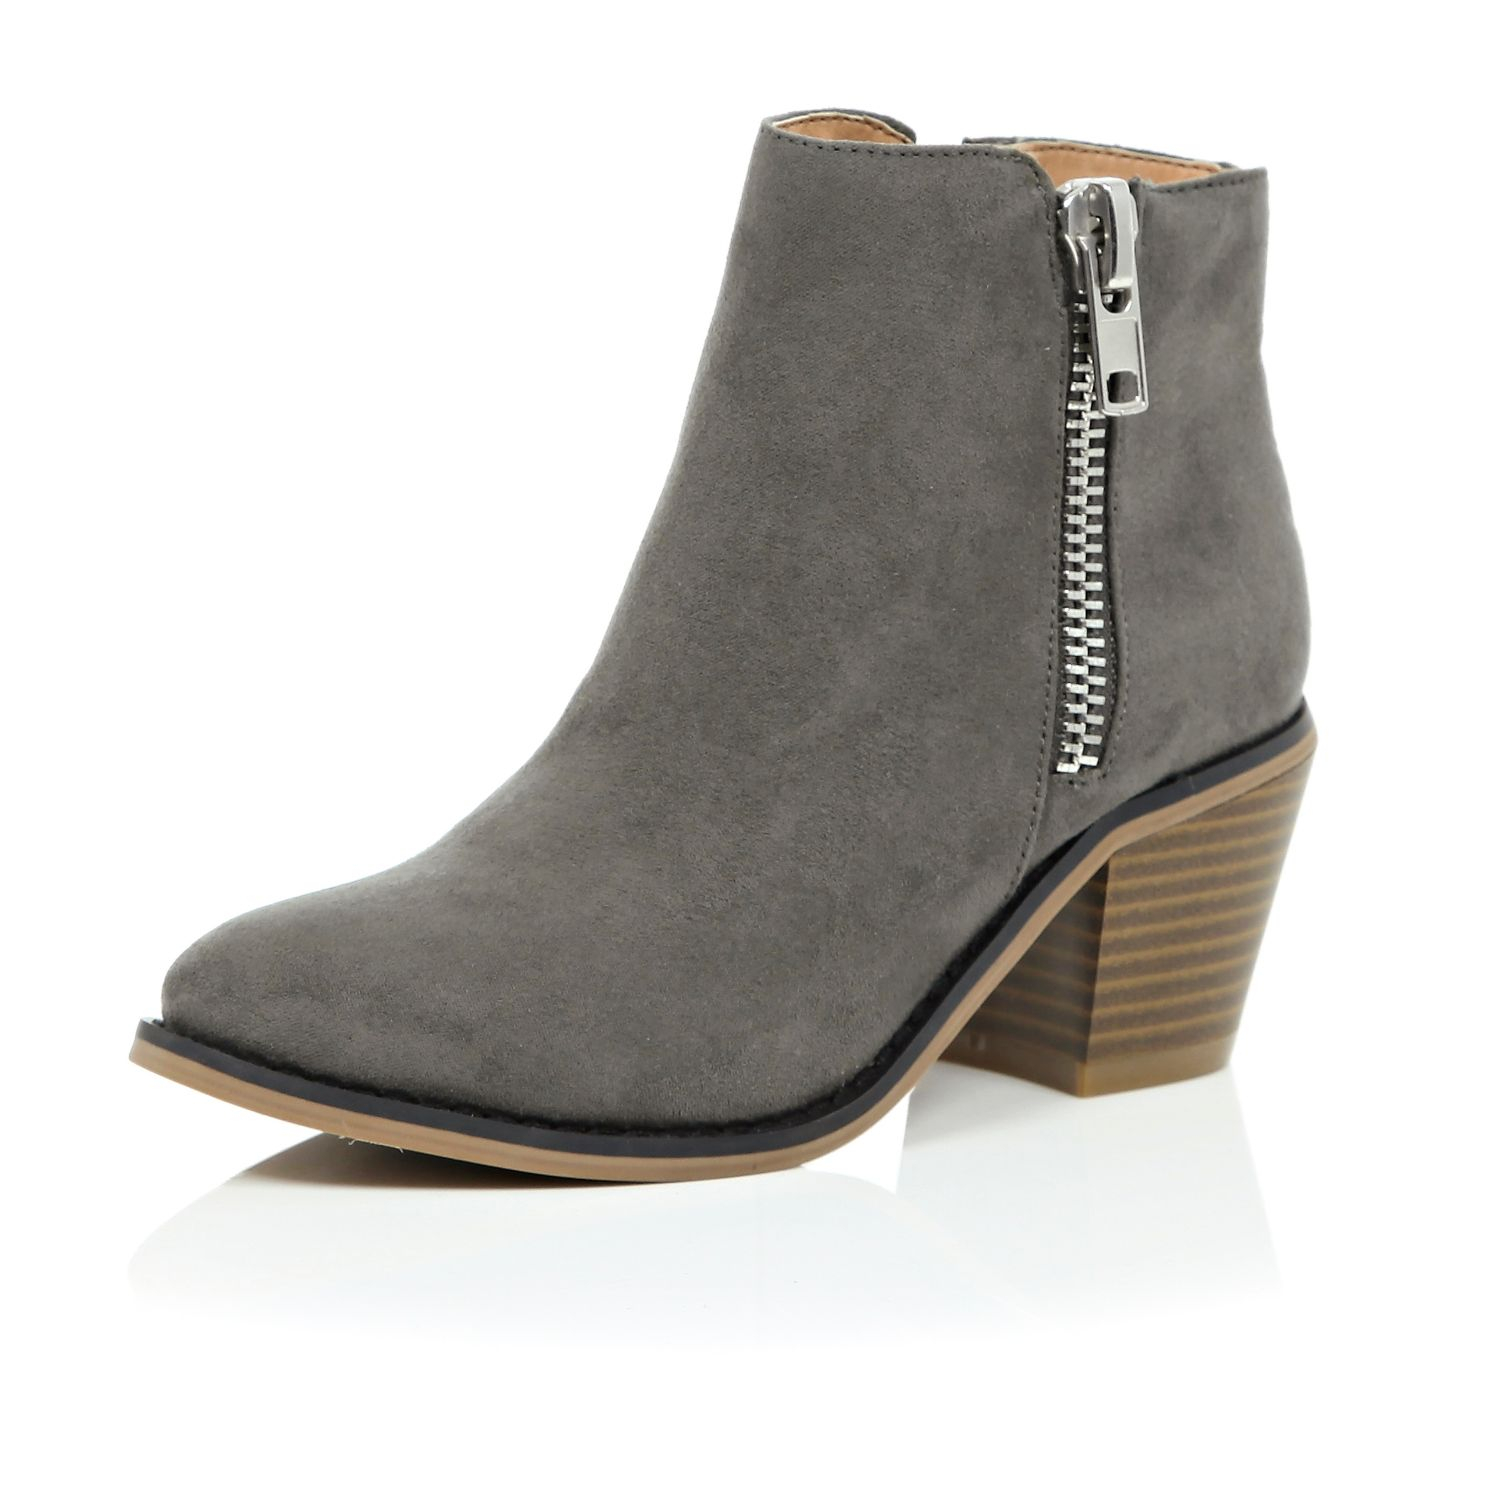 River Island Shoes And Boots